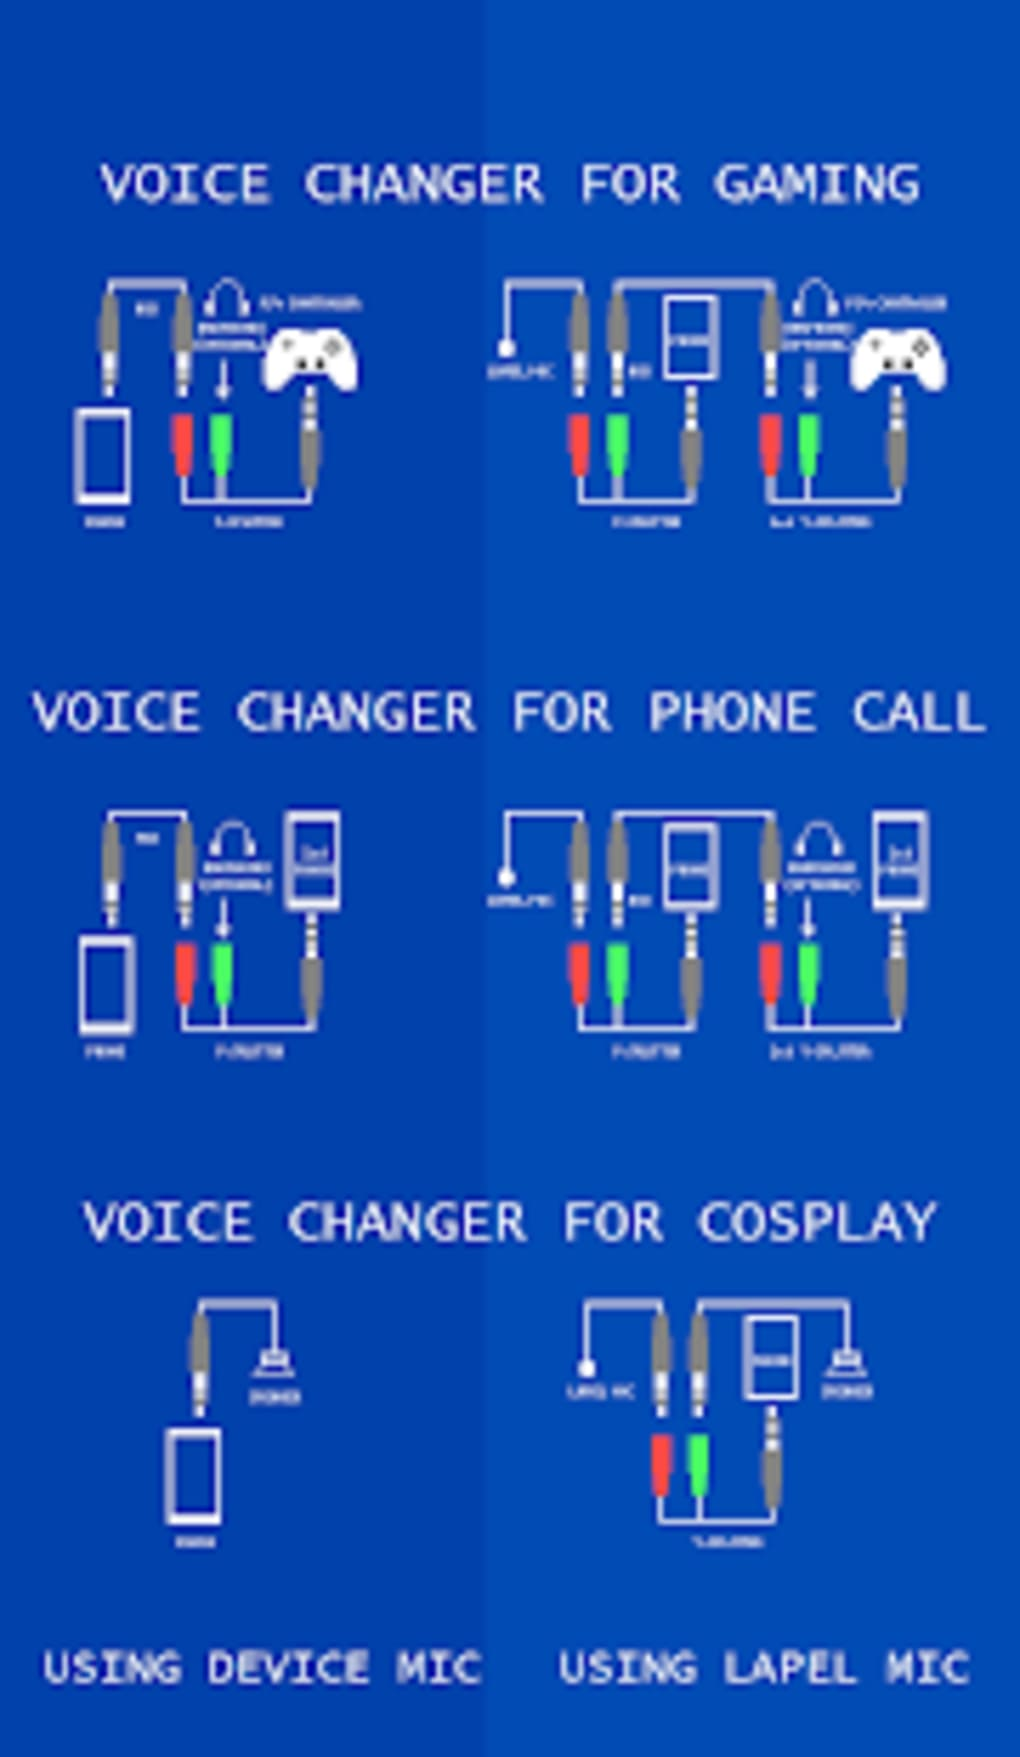 voice changer for gaming pc ps4 xbox 2ndphone screenshot - How To Get A Voice Changer On Ps4 Free